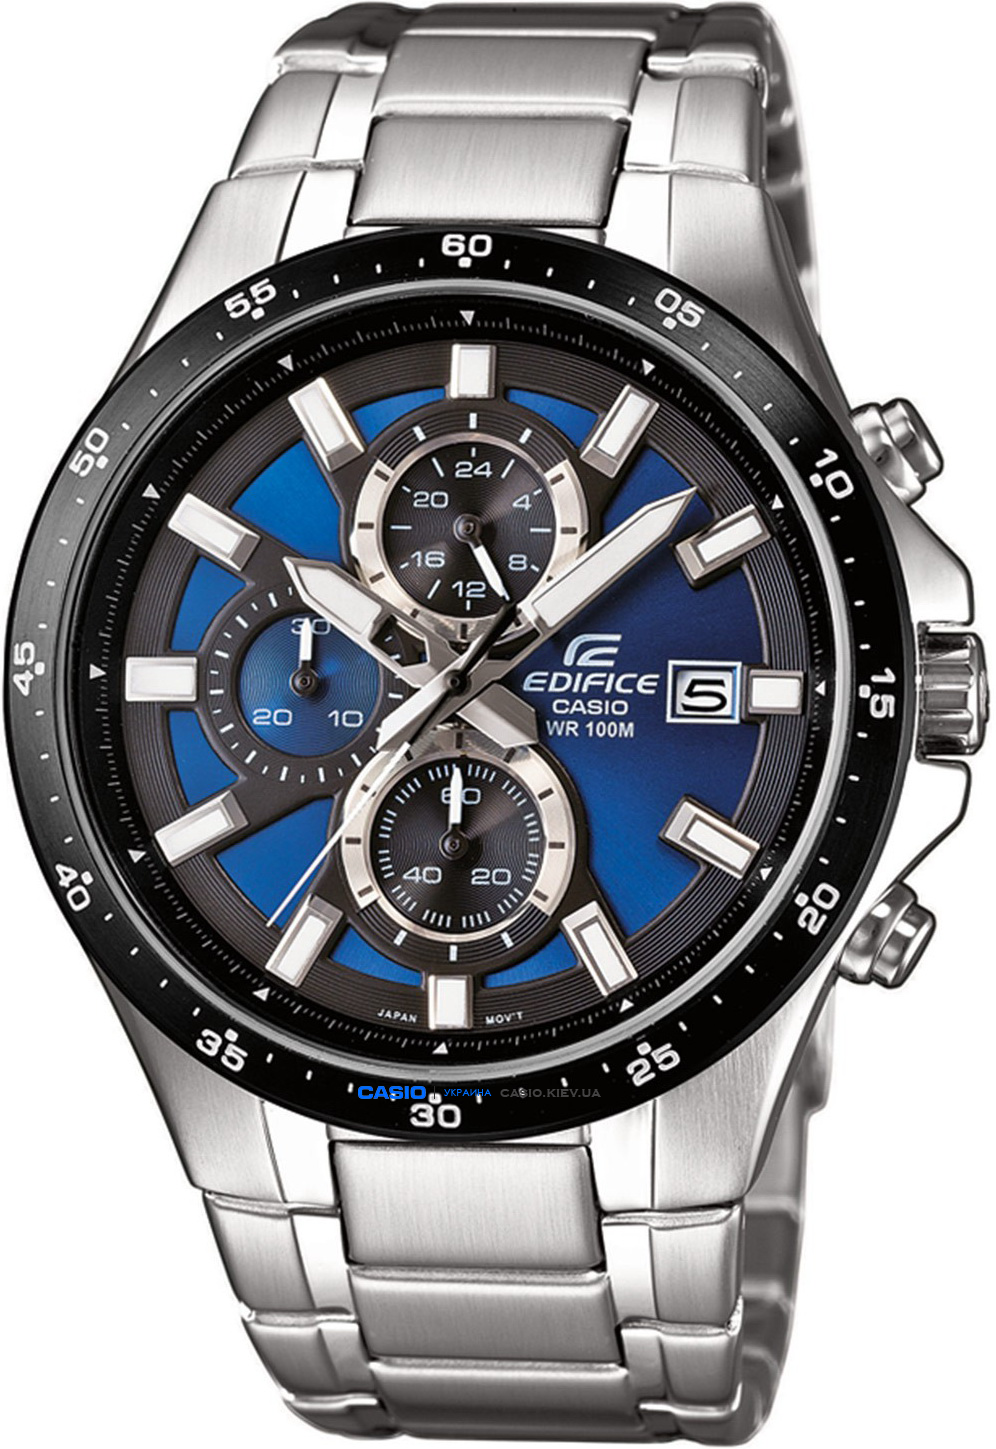 EFR-519D-2AVEF, Casio Edifice